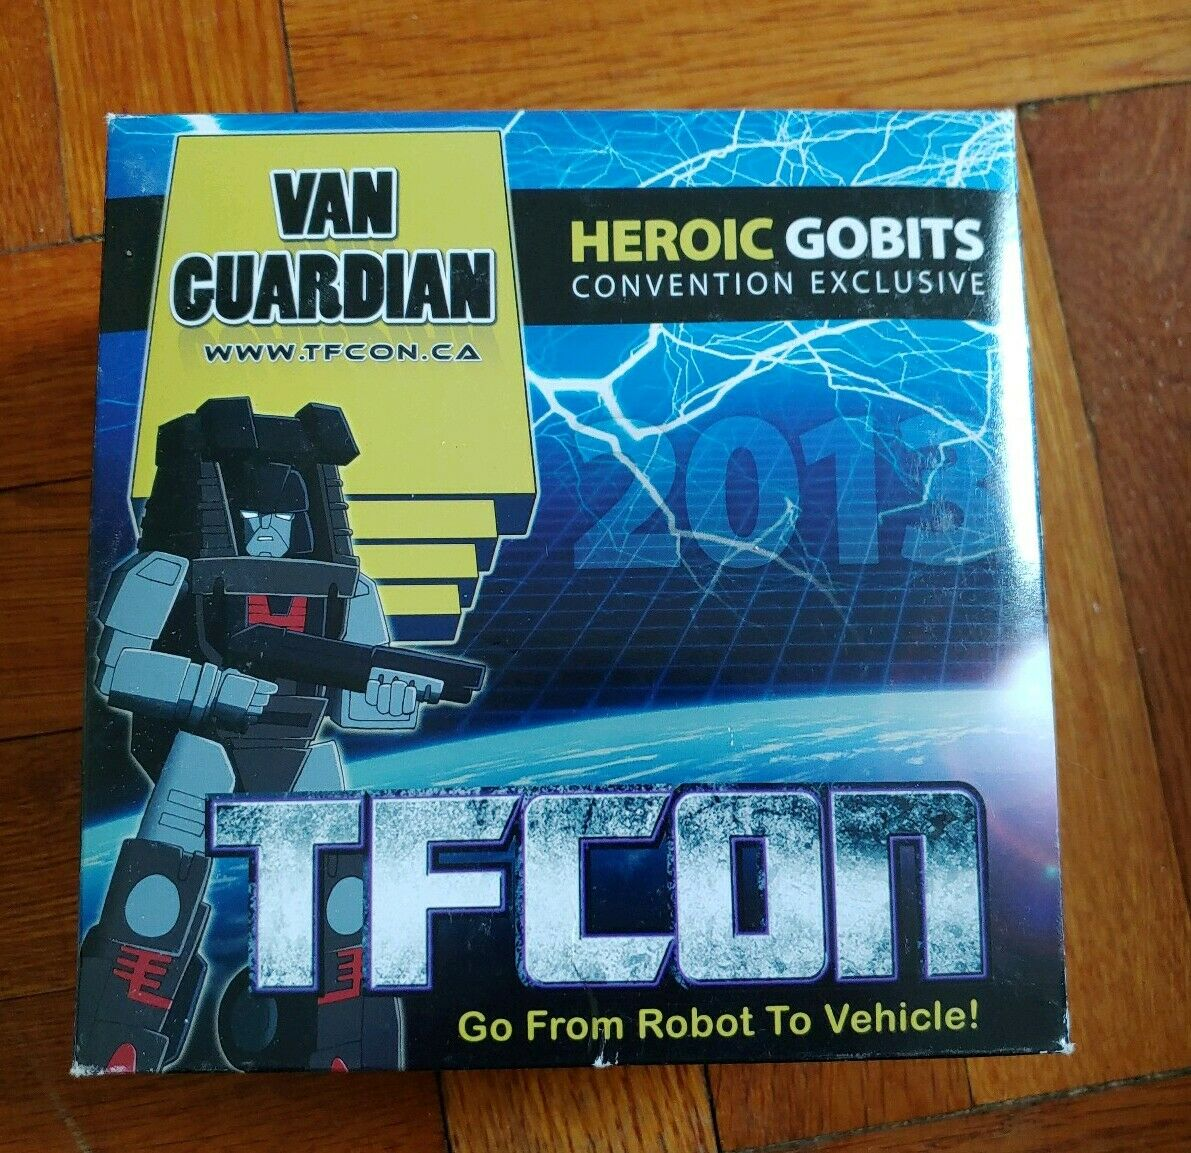 IGear TFCon Exclusive Heroic Gobits Gobot Van Guardian MIB Complete gobots guard